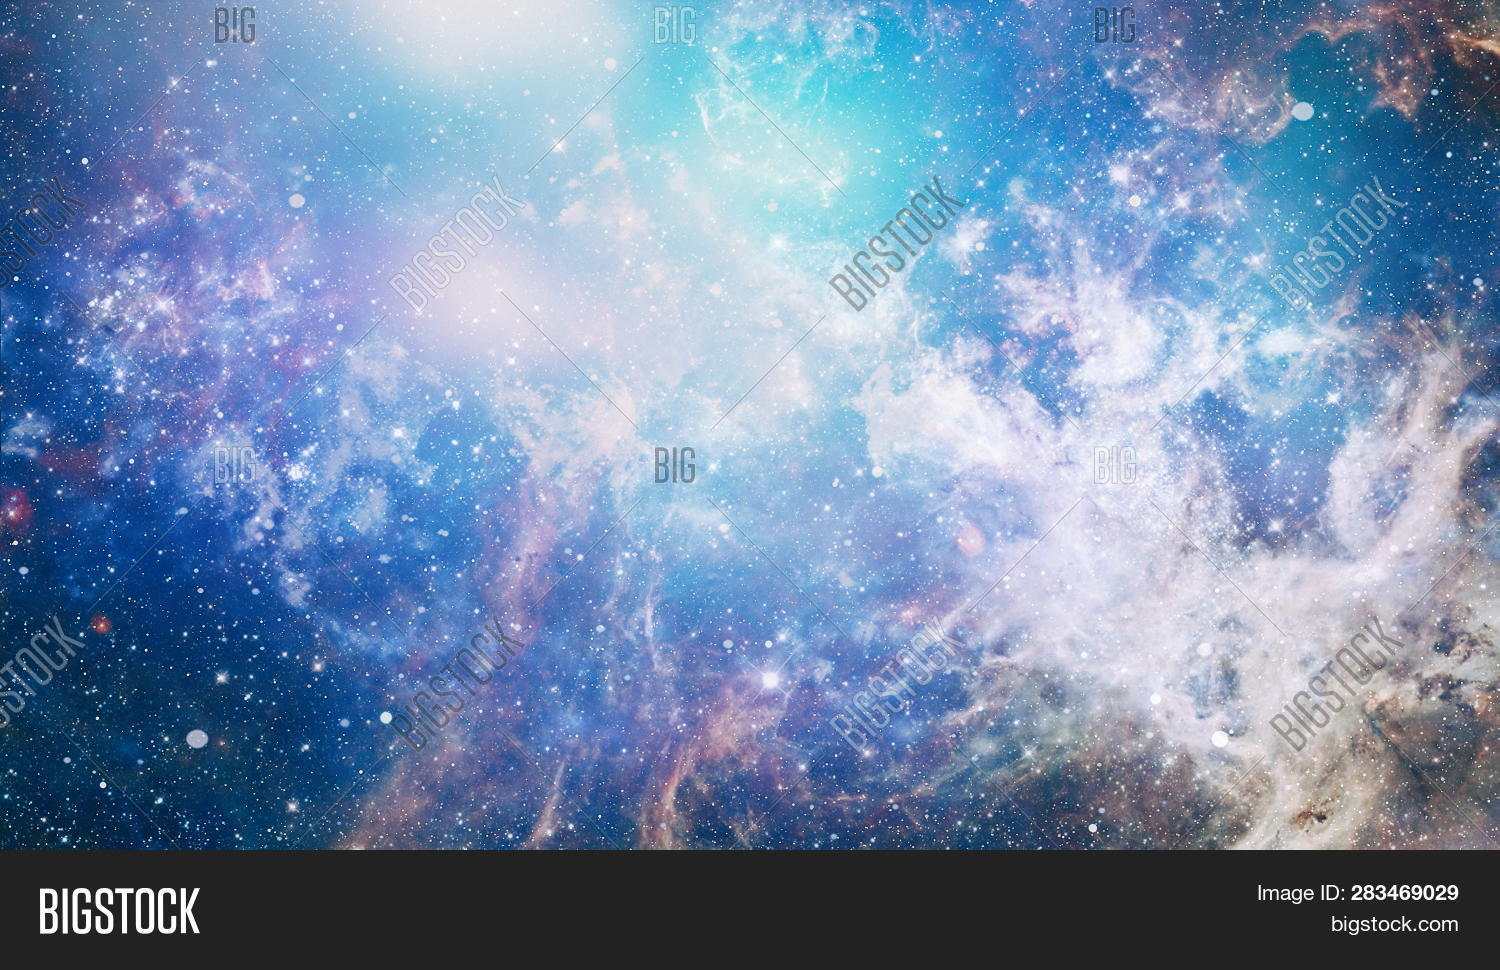 abstract,astro,astrology,astronomy,backdrop,background,bang,big,black,blue,bright,celestial,cloud,cluster,constellation,cosmic,cosmos,creation,dark,darkness,deep,evening,galaxy,hole,interstellar,landscape,light,milky,milkyway,nature,nebula,nebulae,night,outdoor,outer,science,shine,sky,space,sparkle,star,starlight,starry,stellar,telescope,texture,universe,wallpaper,way